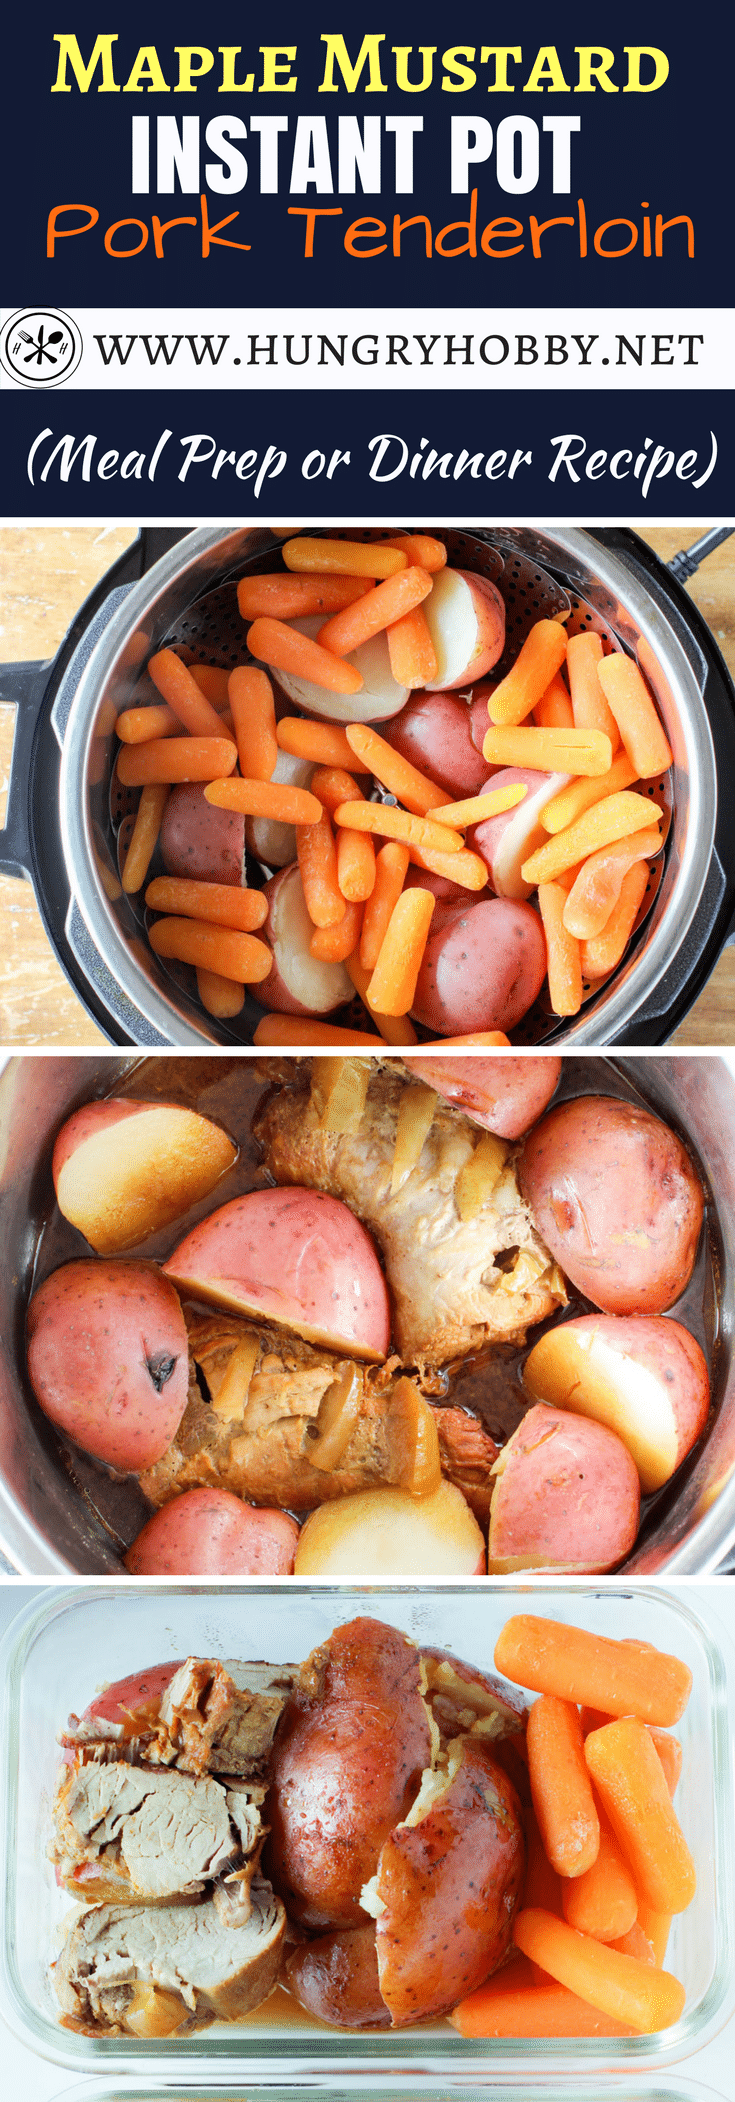 Meal Prep Maple Mustard Instant Pot Pork Tenderloin - paleo/GF